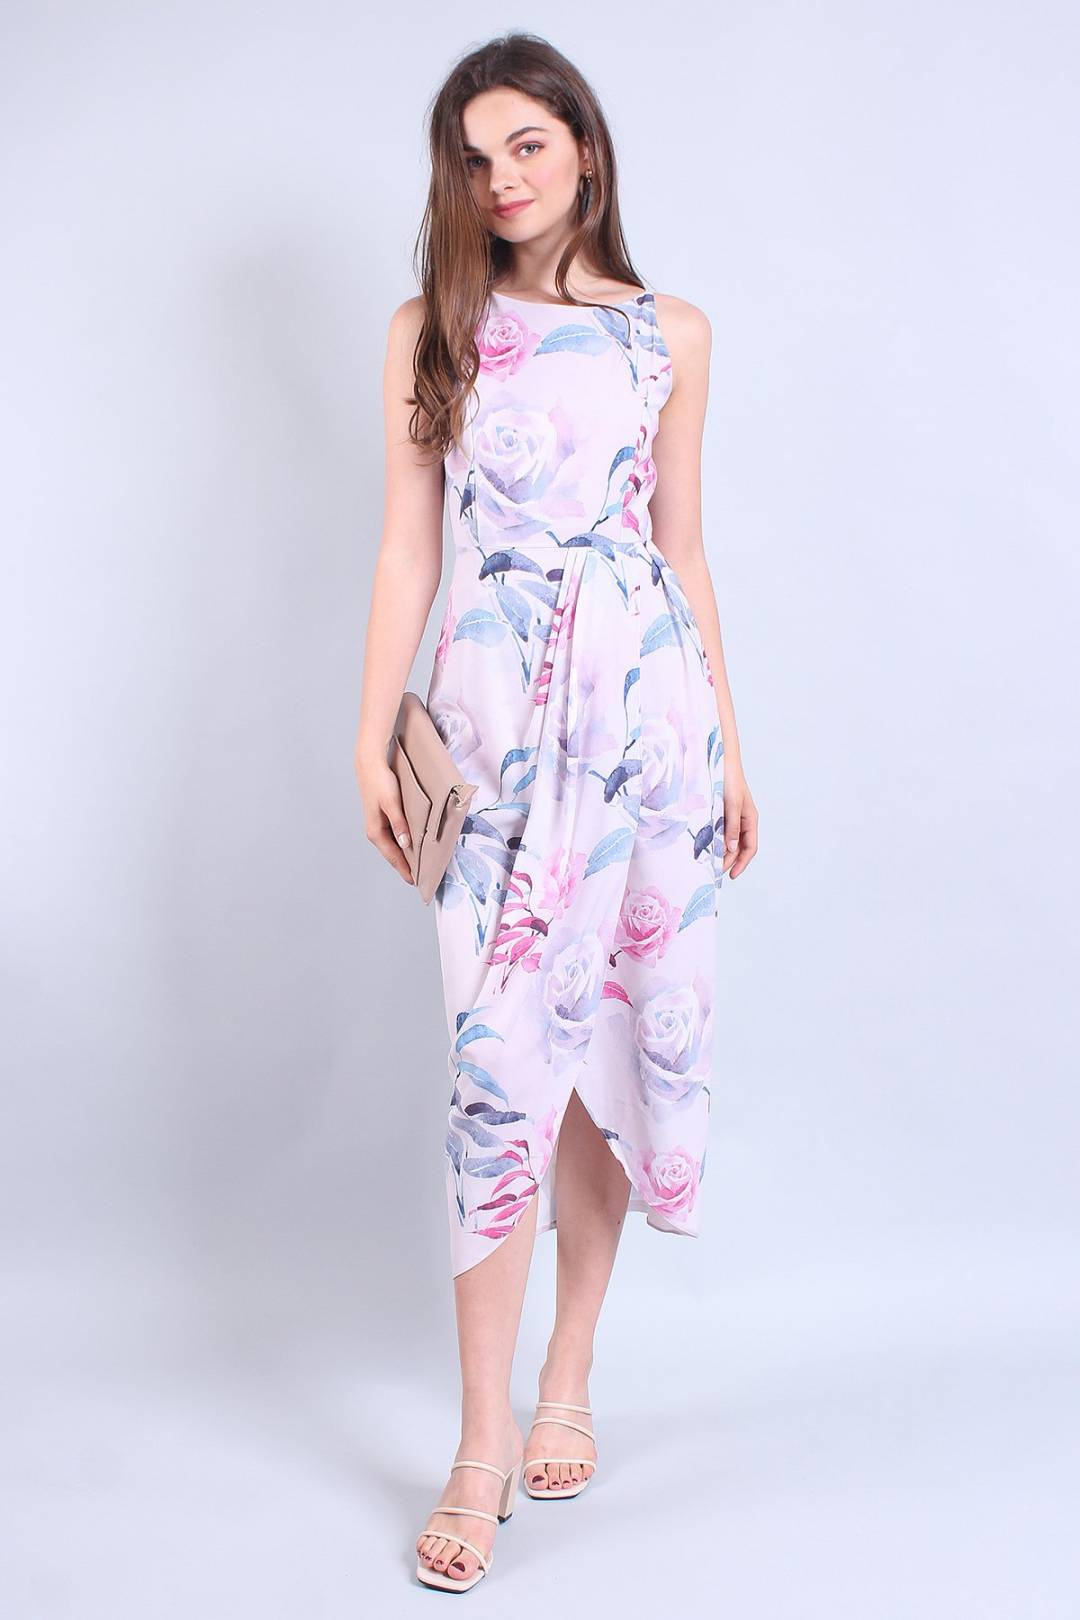 MADEBYNM MERRA HIGH-LOW DRAPE MIDI DRESS IN FLORAL PINK [XS/S/M/L]